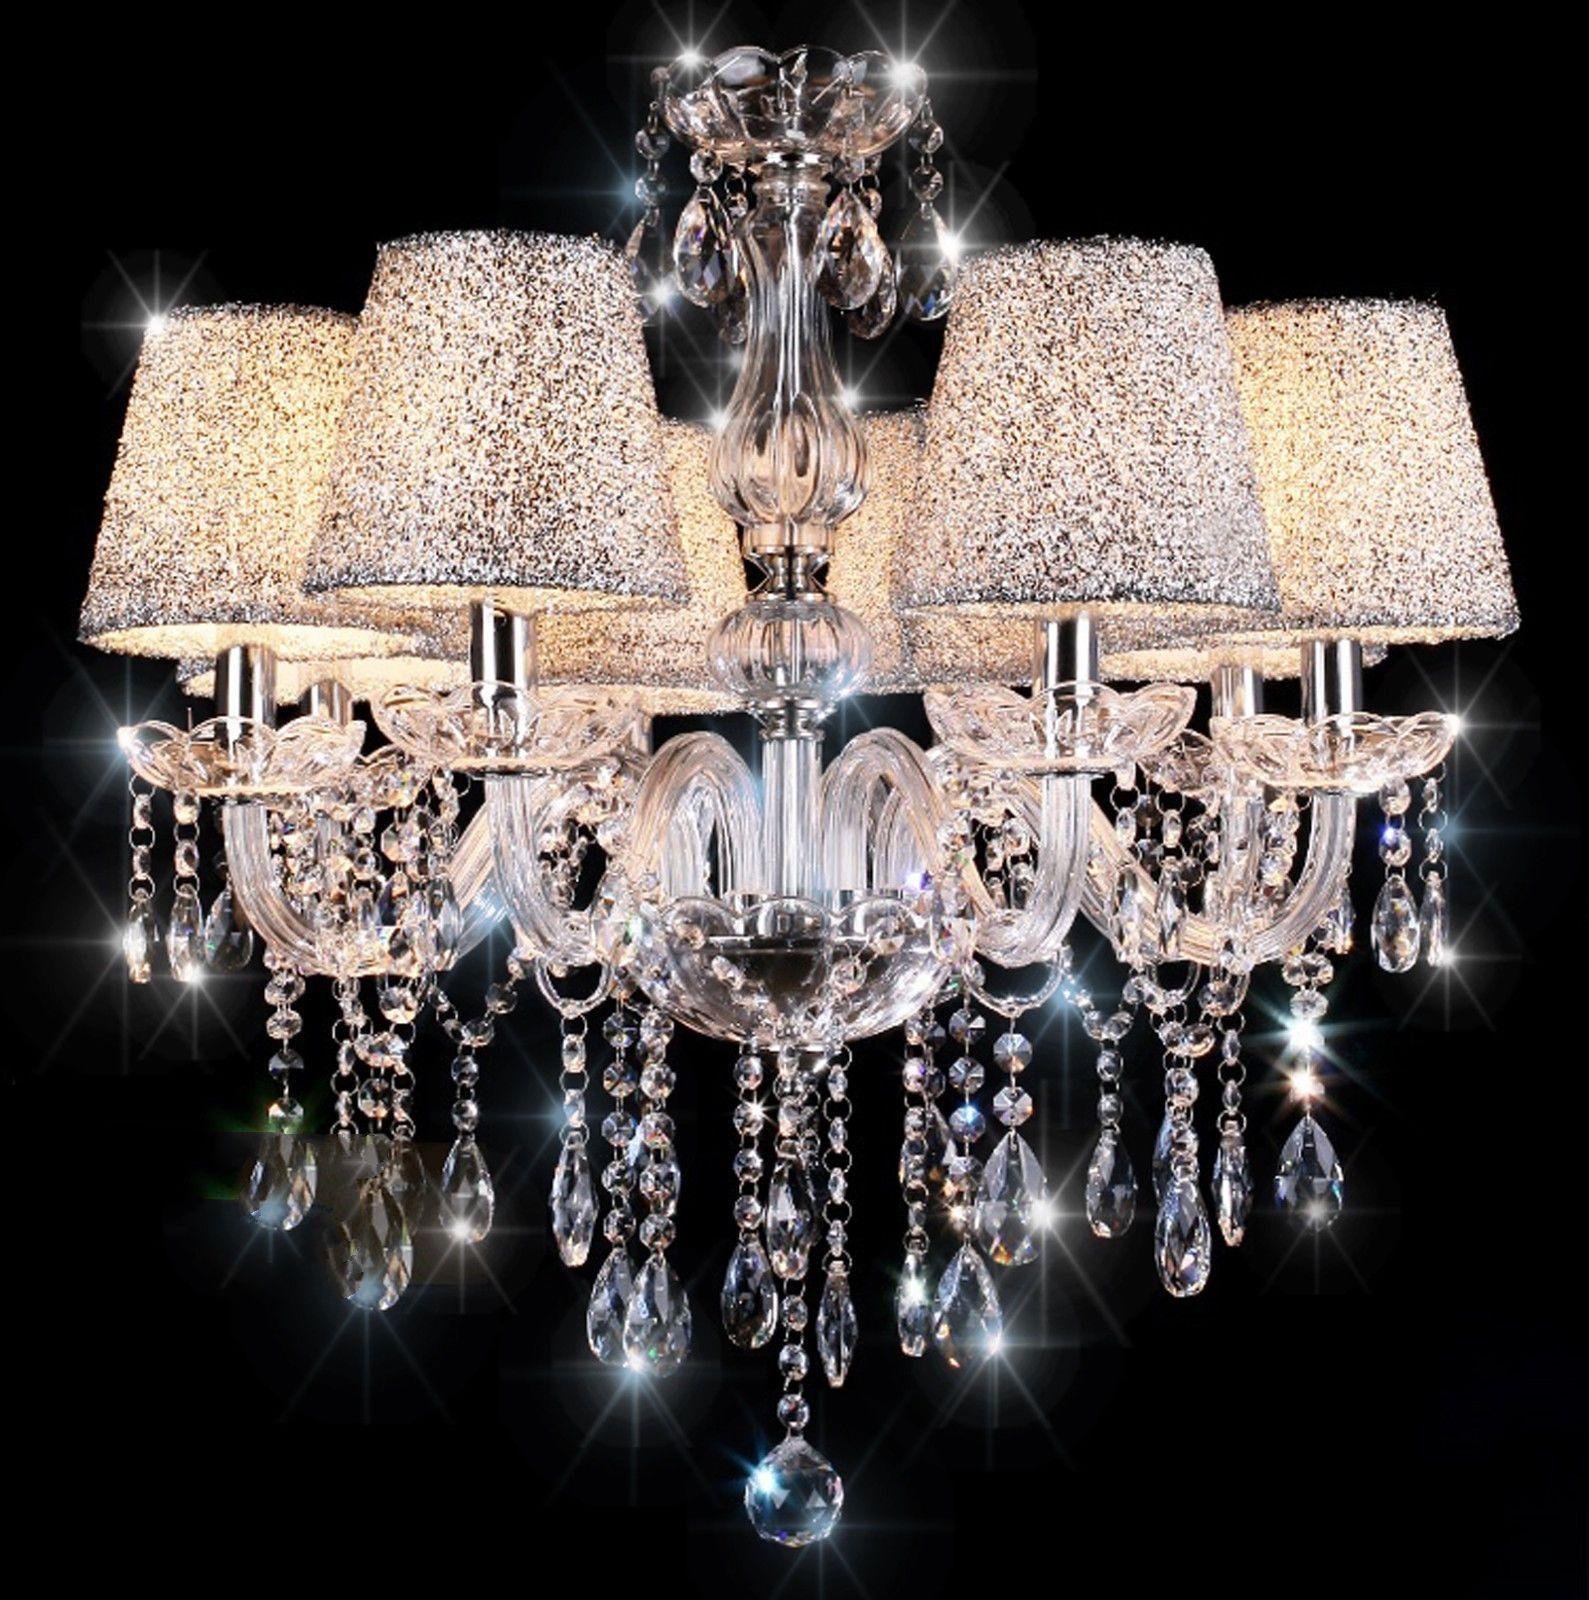 Crystal chandelier clear 6 8 10 arm candle lamp water Crystal candle chandelier